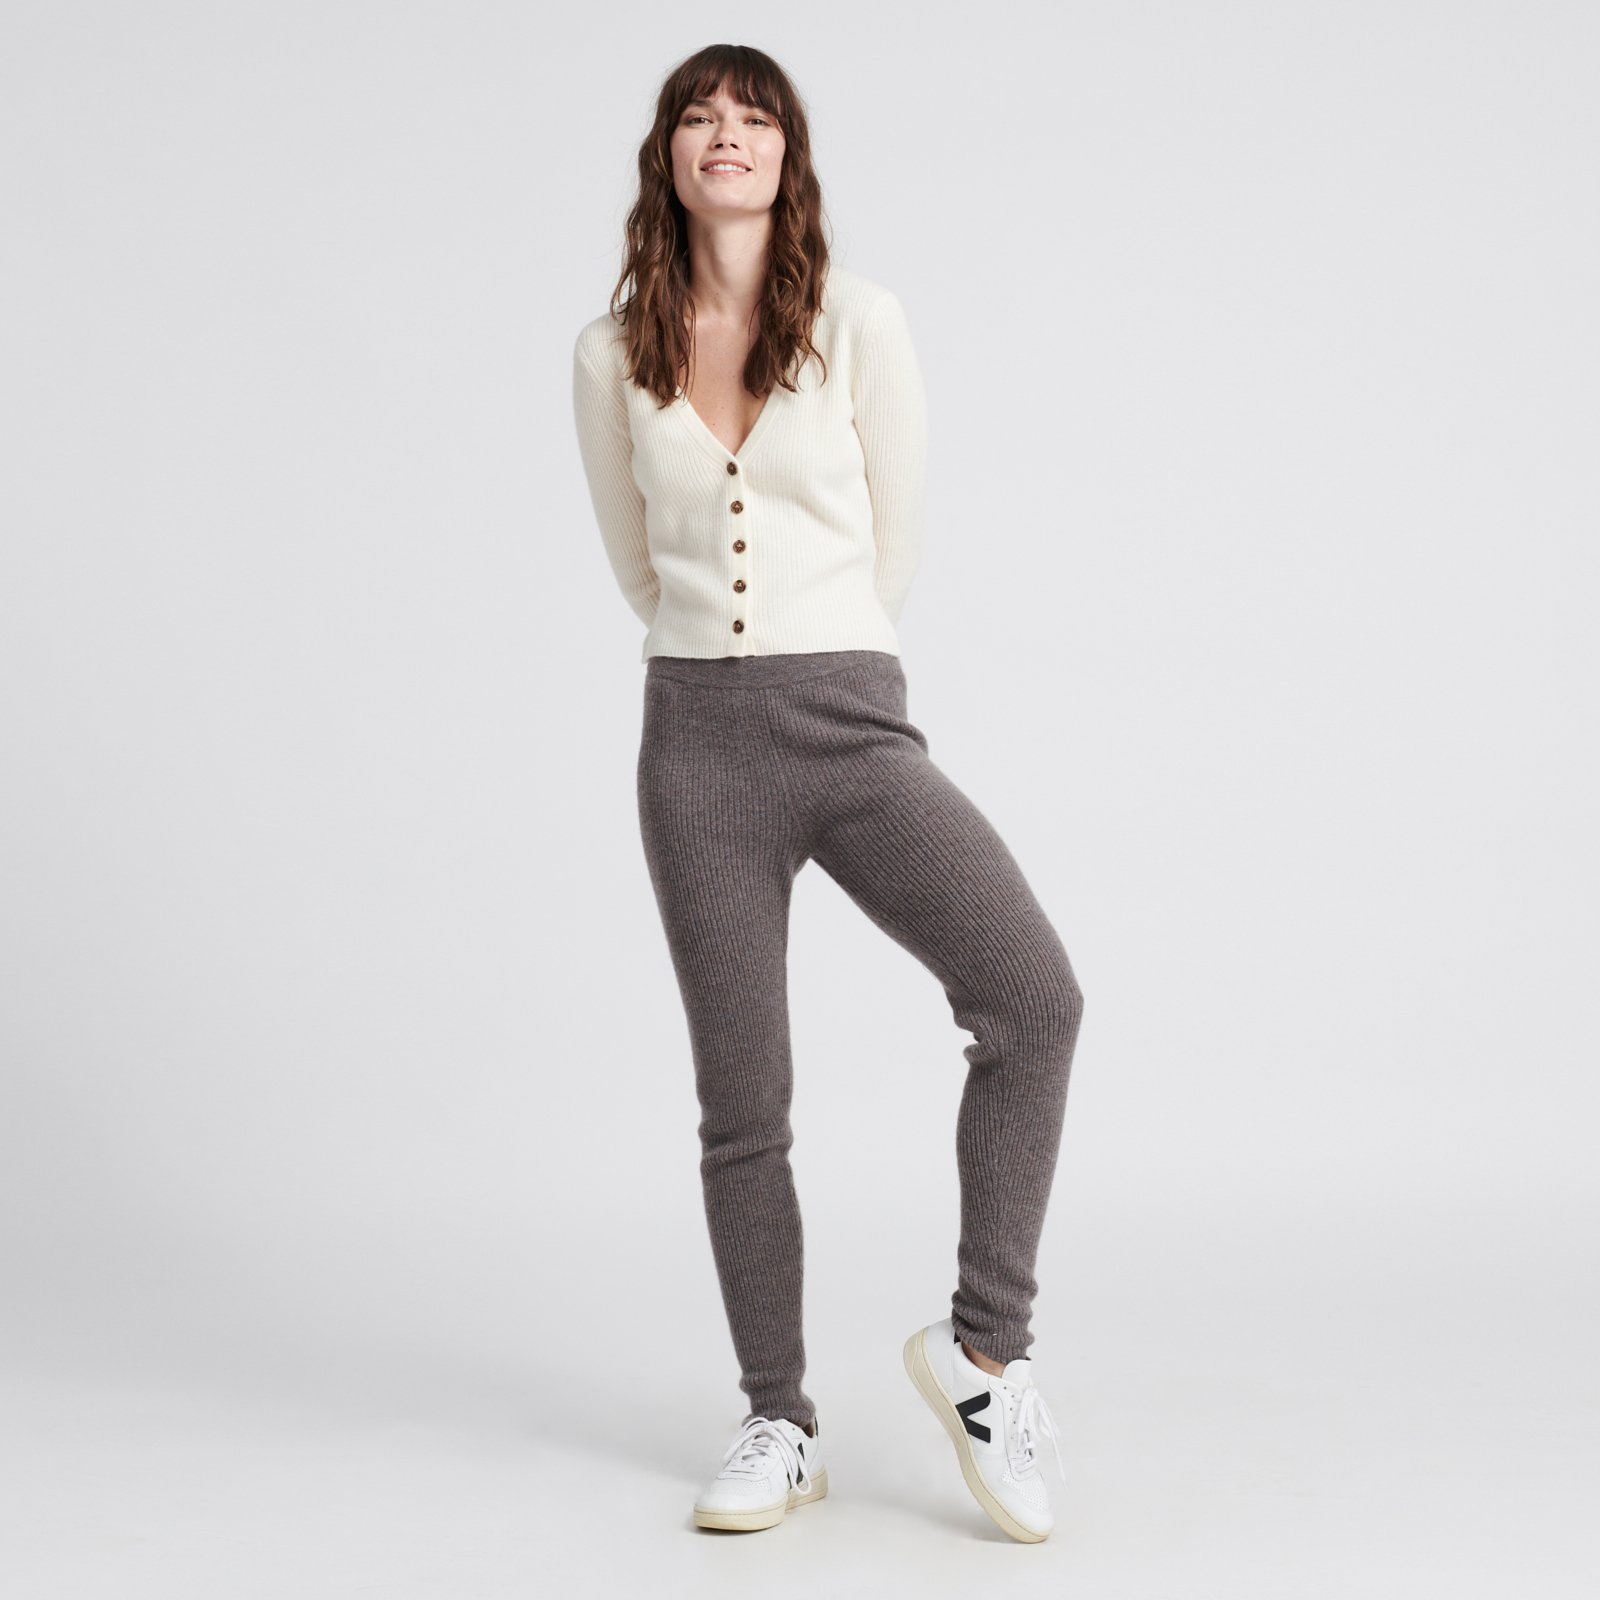 NADAAM Cashmere Lounge Pants in Heathered Grey & Cashmere Ribbed Cardigan in White